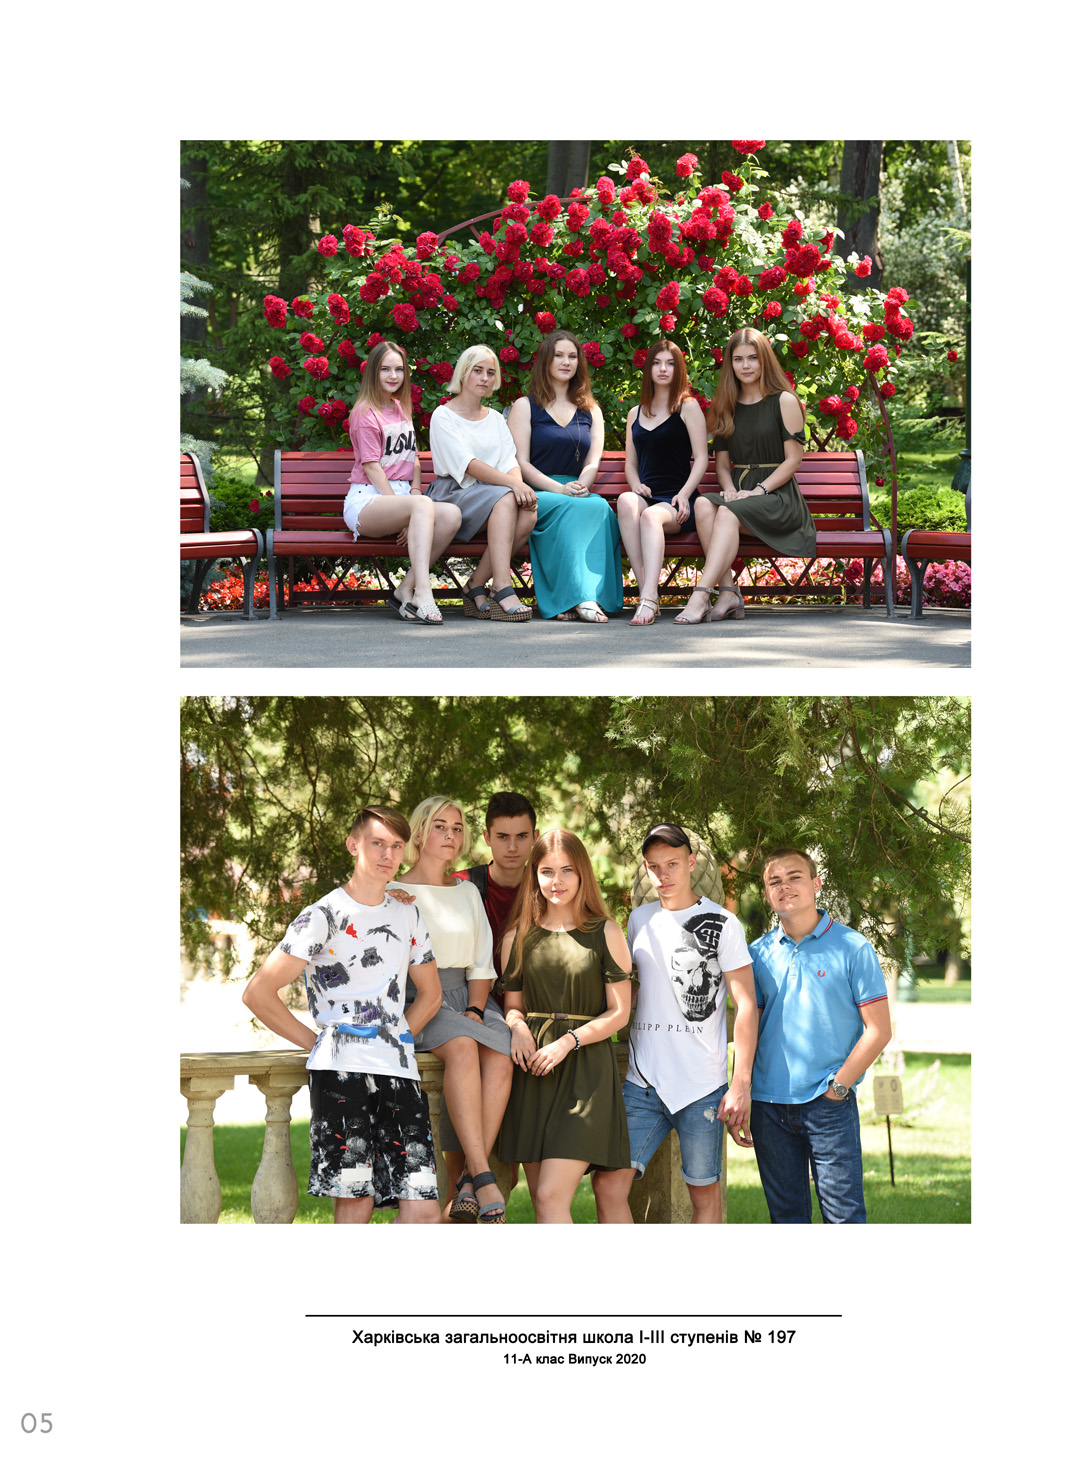 https://school-photo.com.ua/wp-content/uploads/2019/09/05-copy.jpg